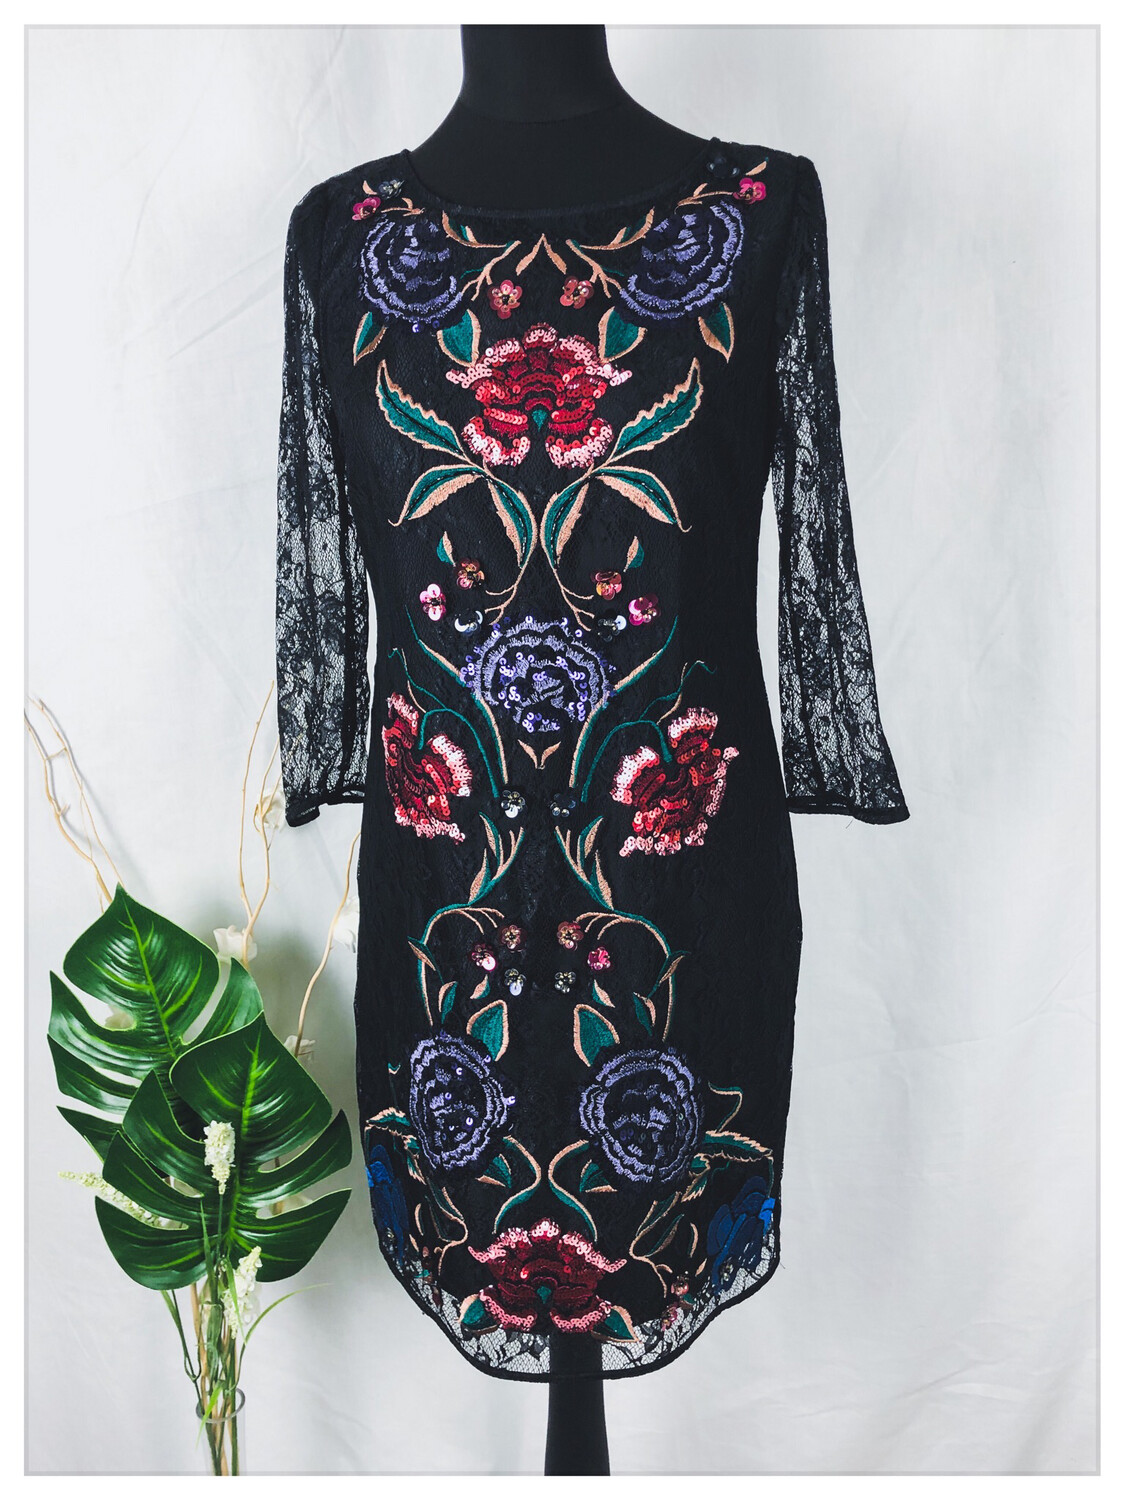 Monsoon Lace Embroidered Dress Size 10